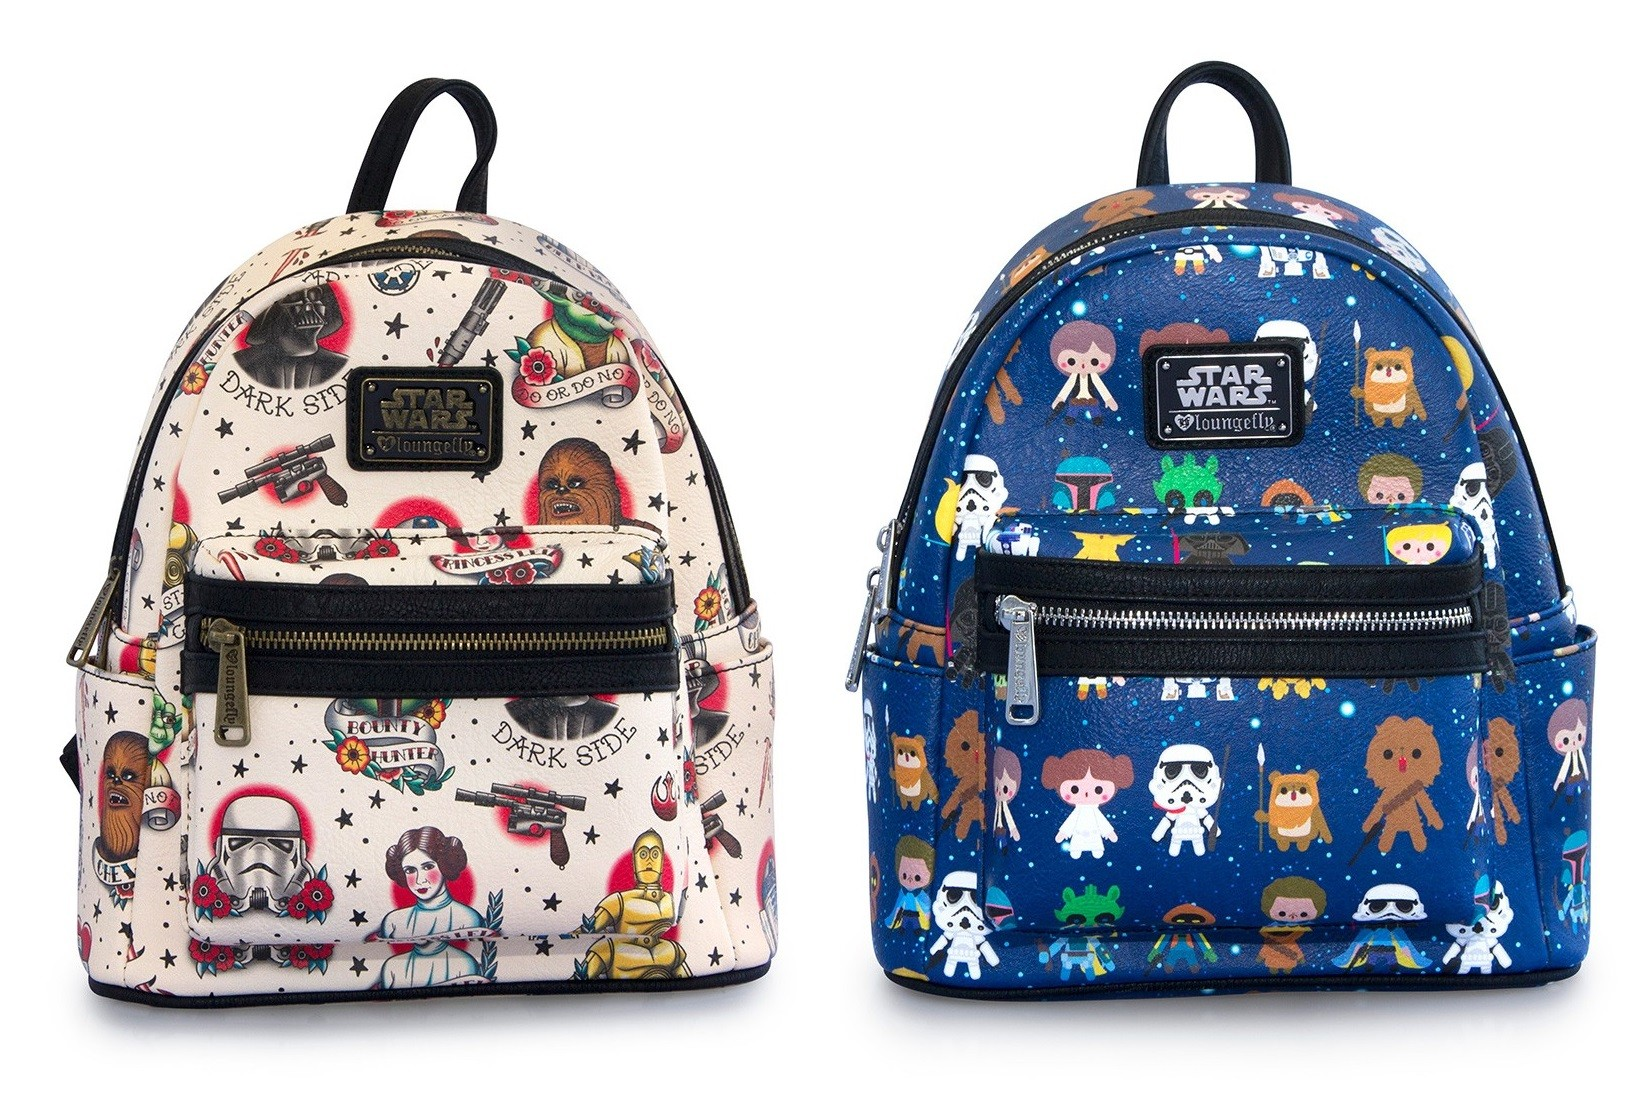 New Star Wars backpacks at Loungefly - The Kessel Runway